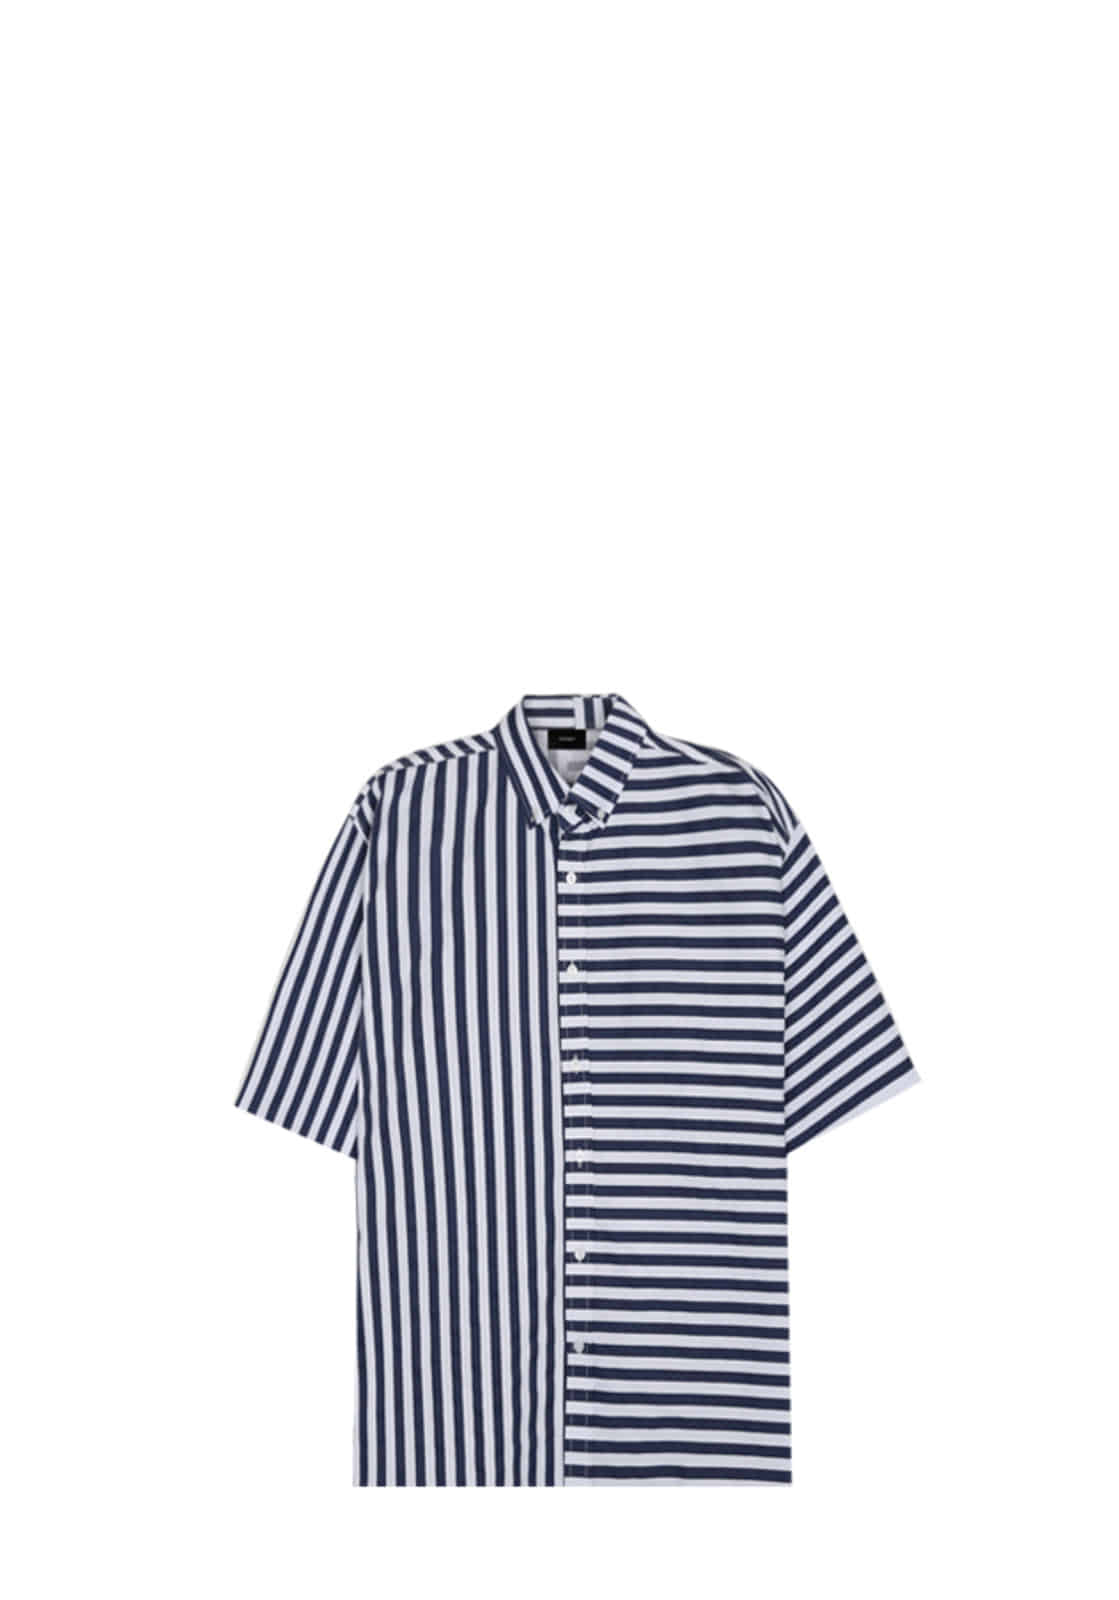 V421 MARINE STRIPE SHIRT  BLUE